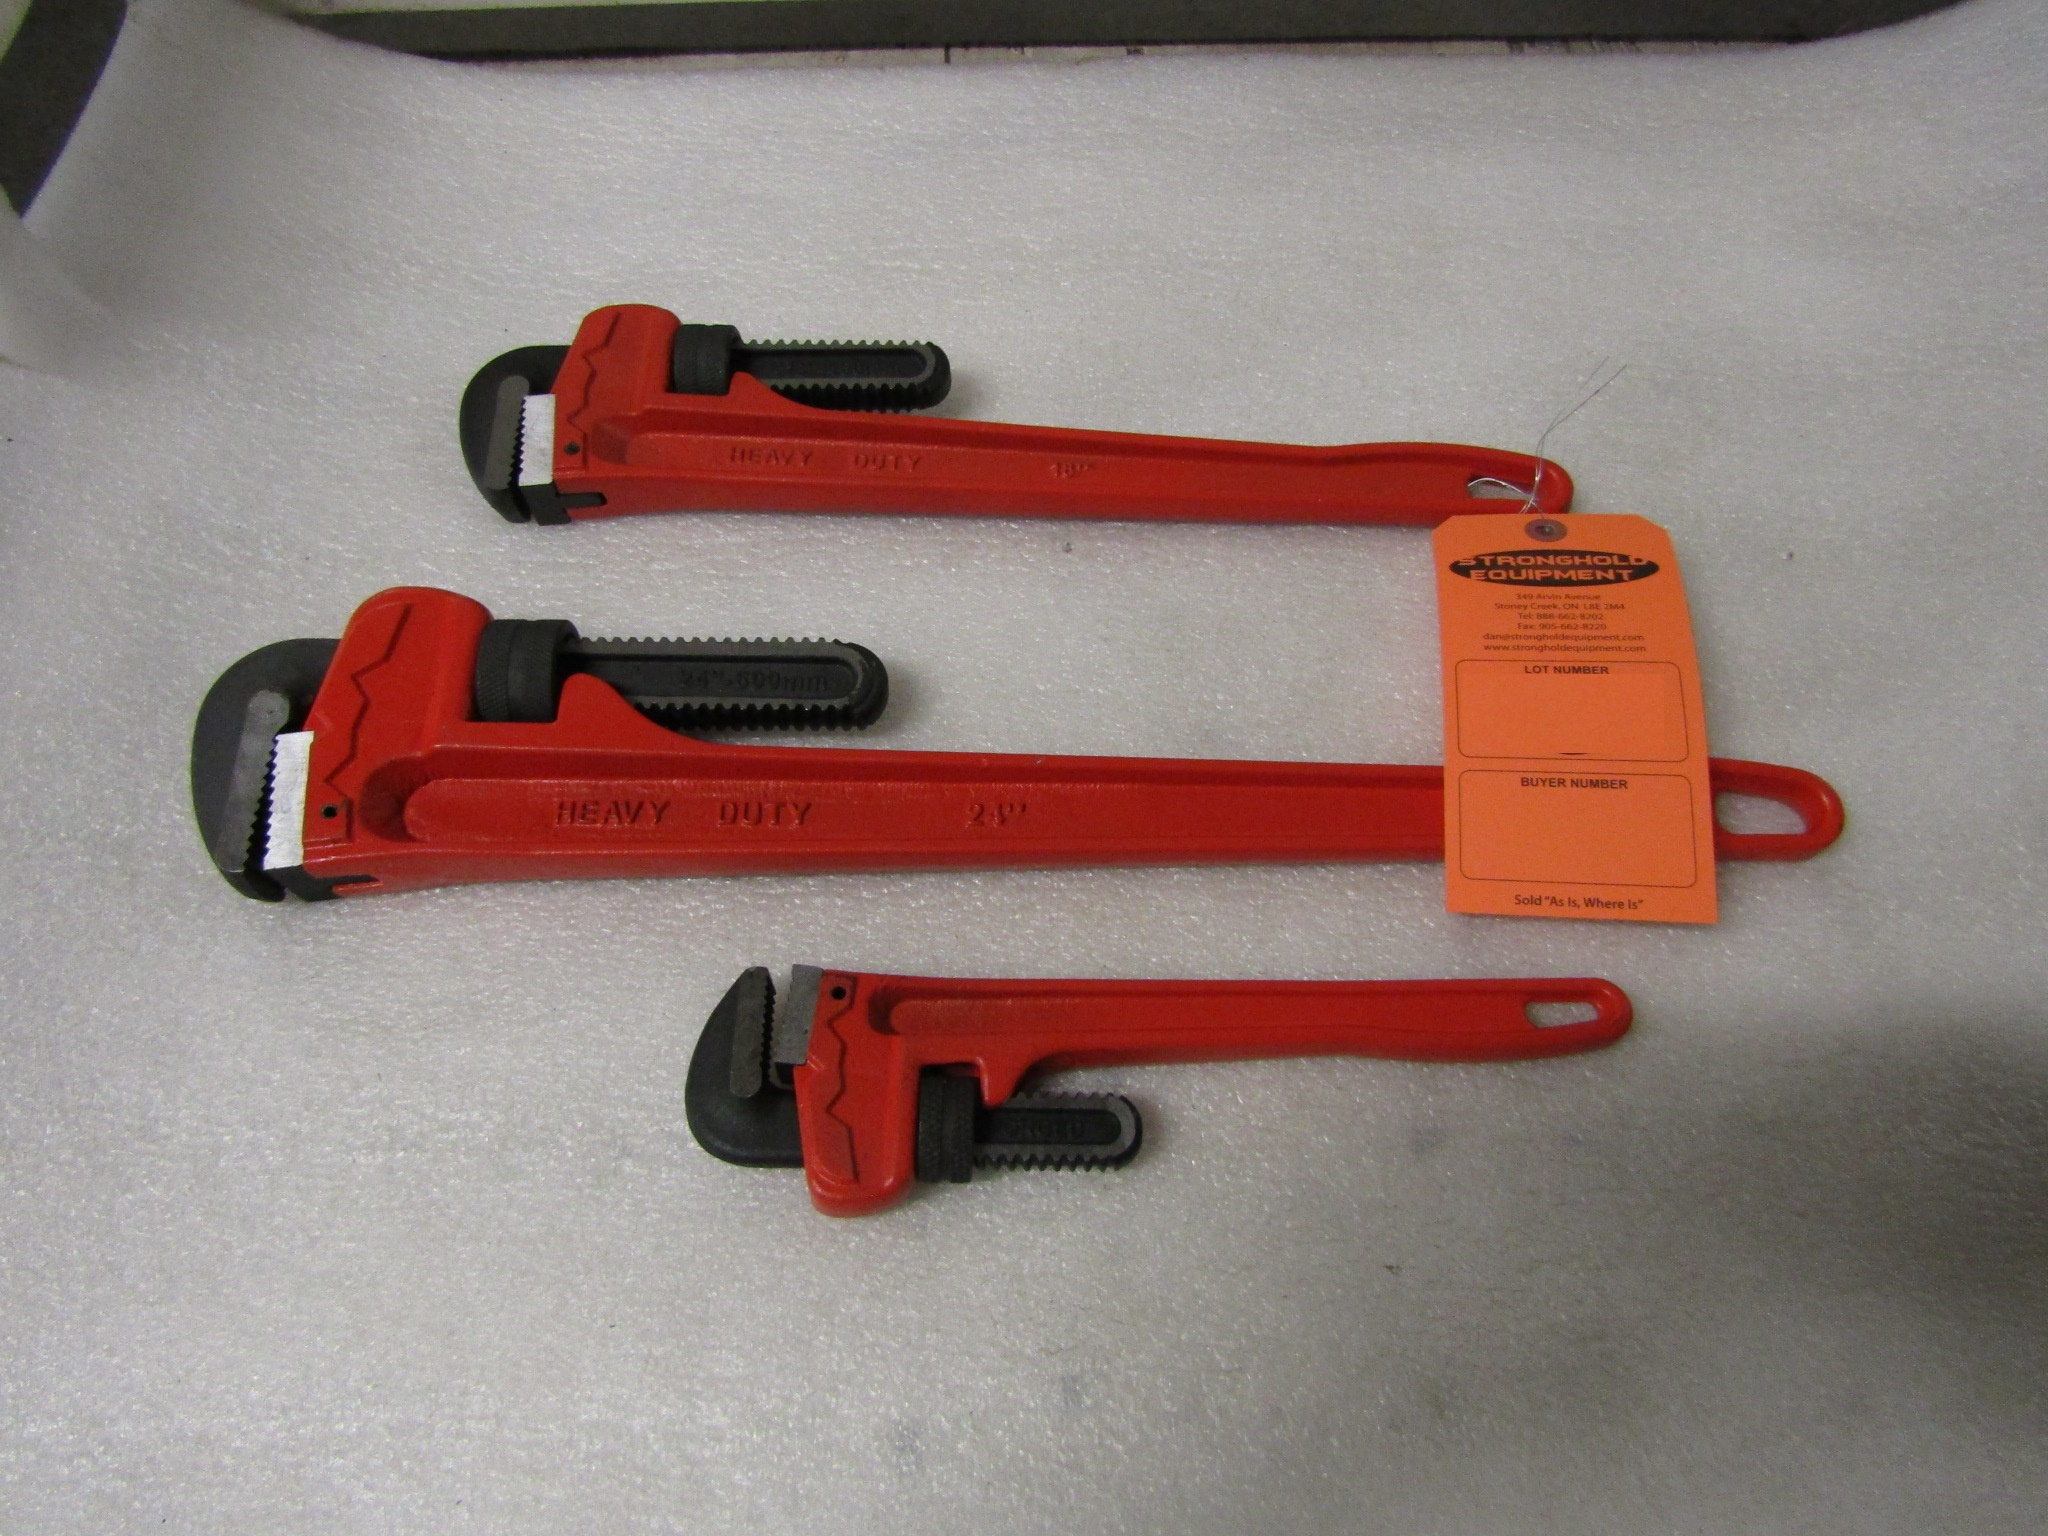 Lot 7 - Lot of 3 Pipe Wrenches - brand new